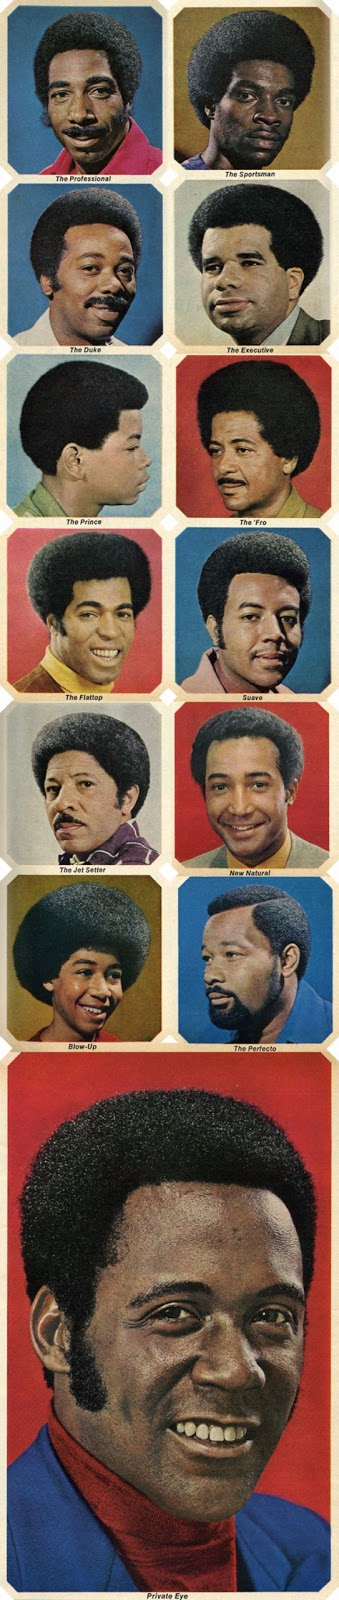 These Are Commercial Drawings Of Afro Styles In The 1970s, When This  Particular Natural Hairstyle Was At Its Peak In Terms Of Popularity.